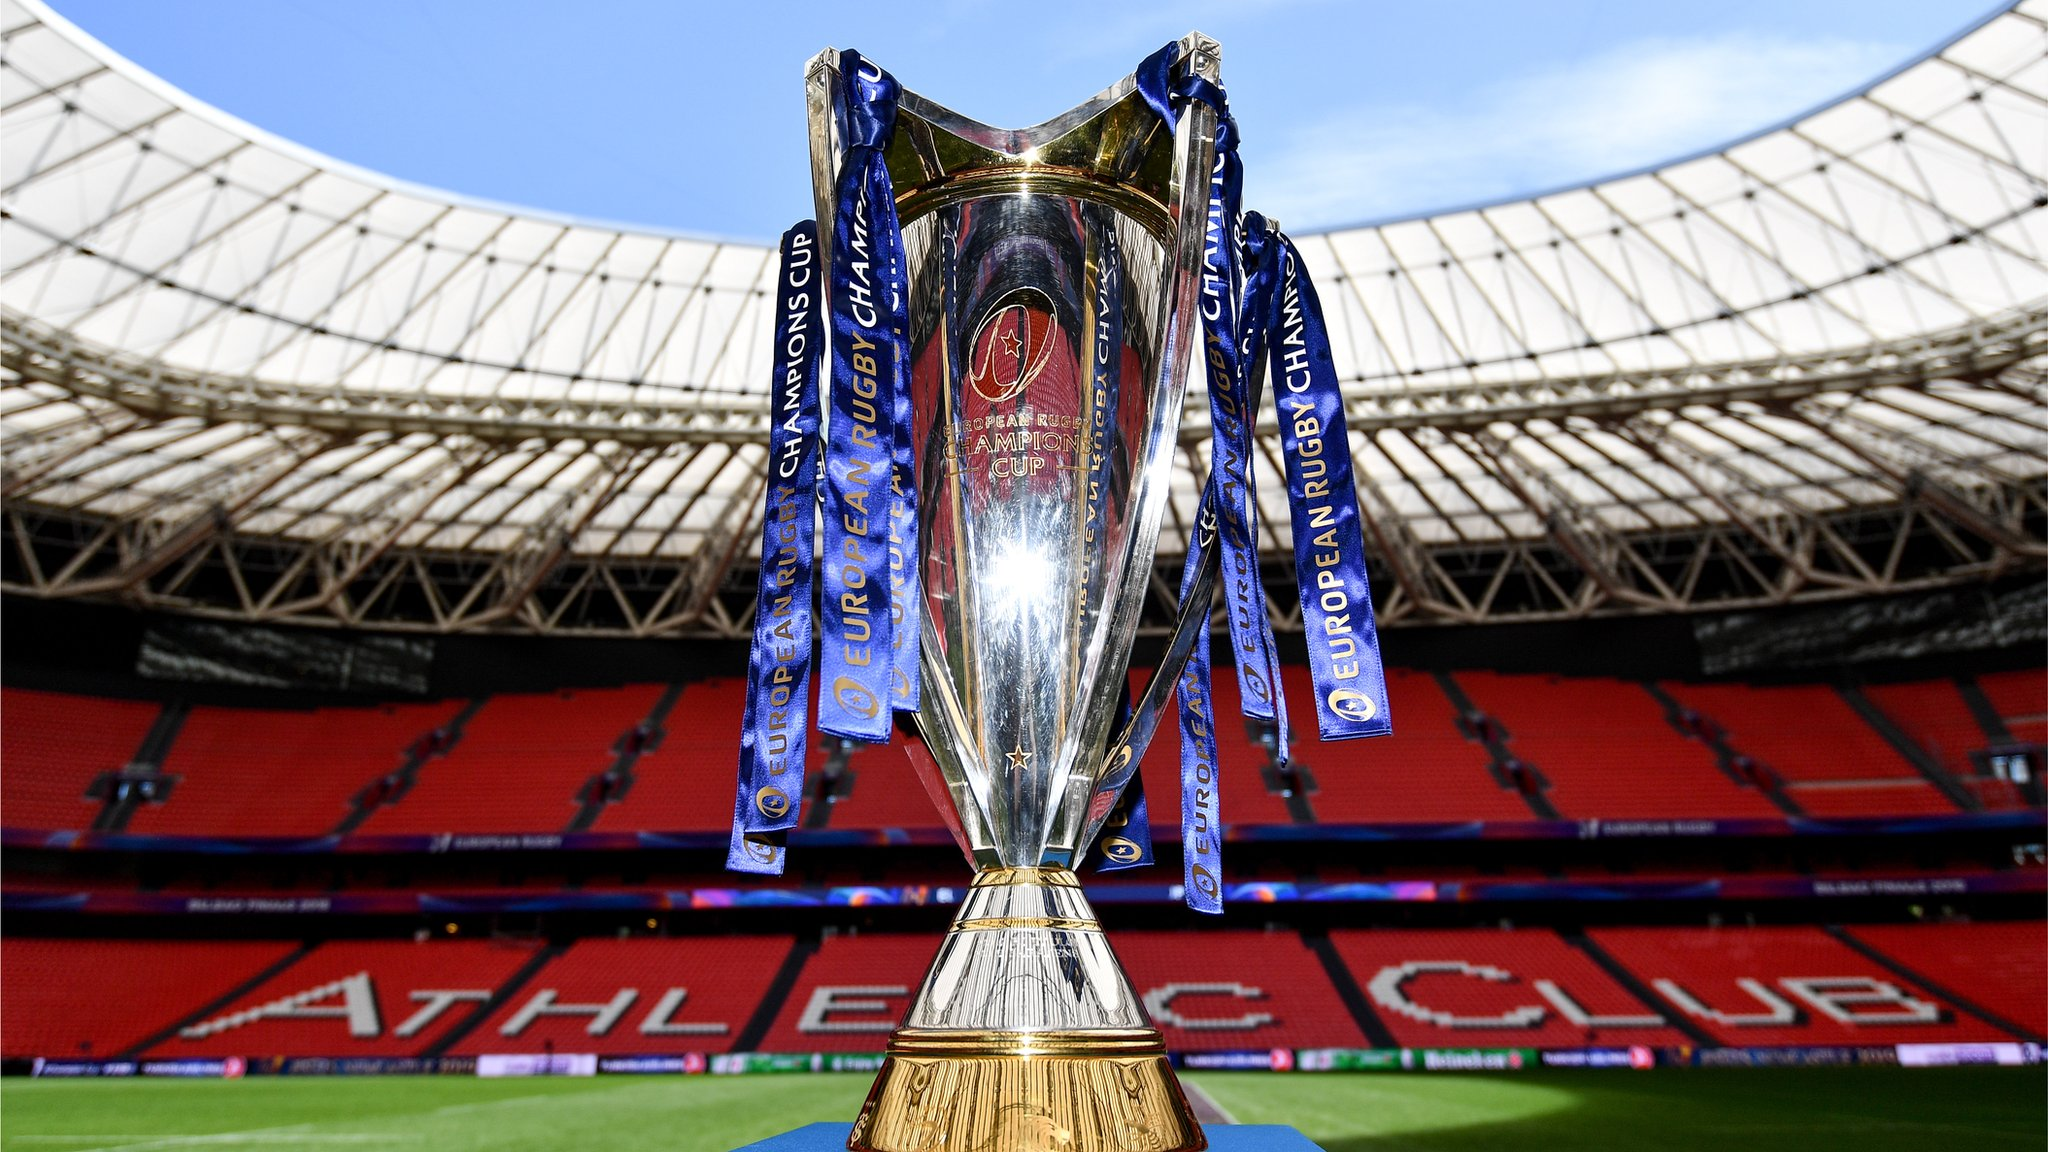 European Rugby Champions Cup: Who qualifies for the quarter-finals?